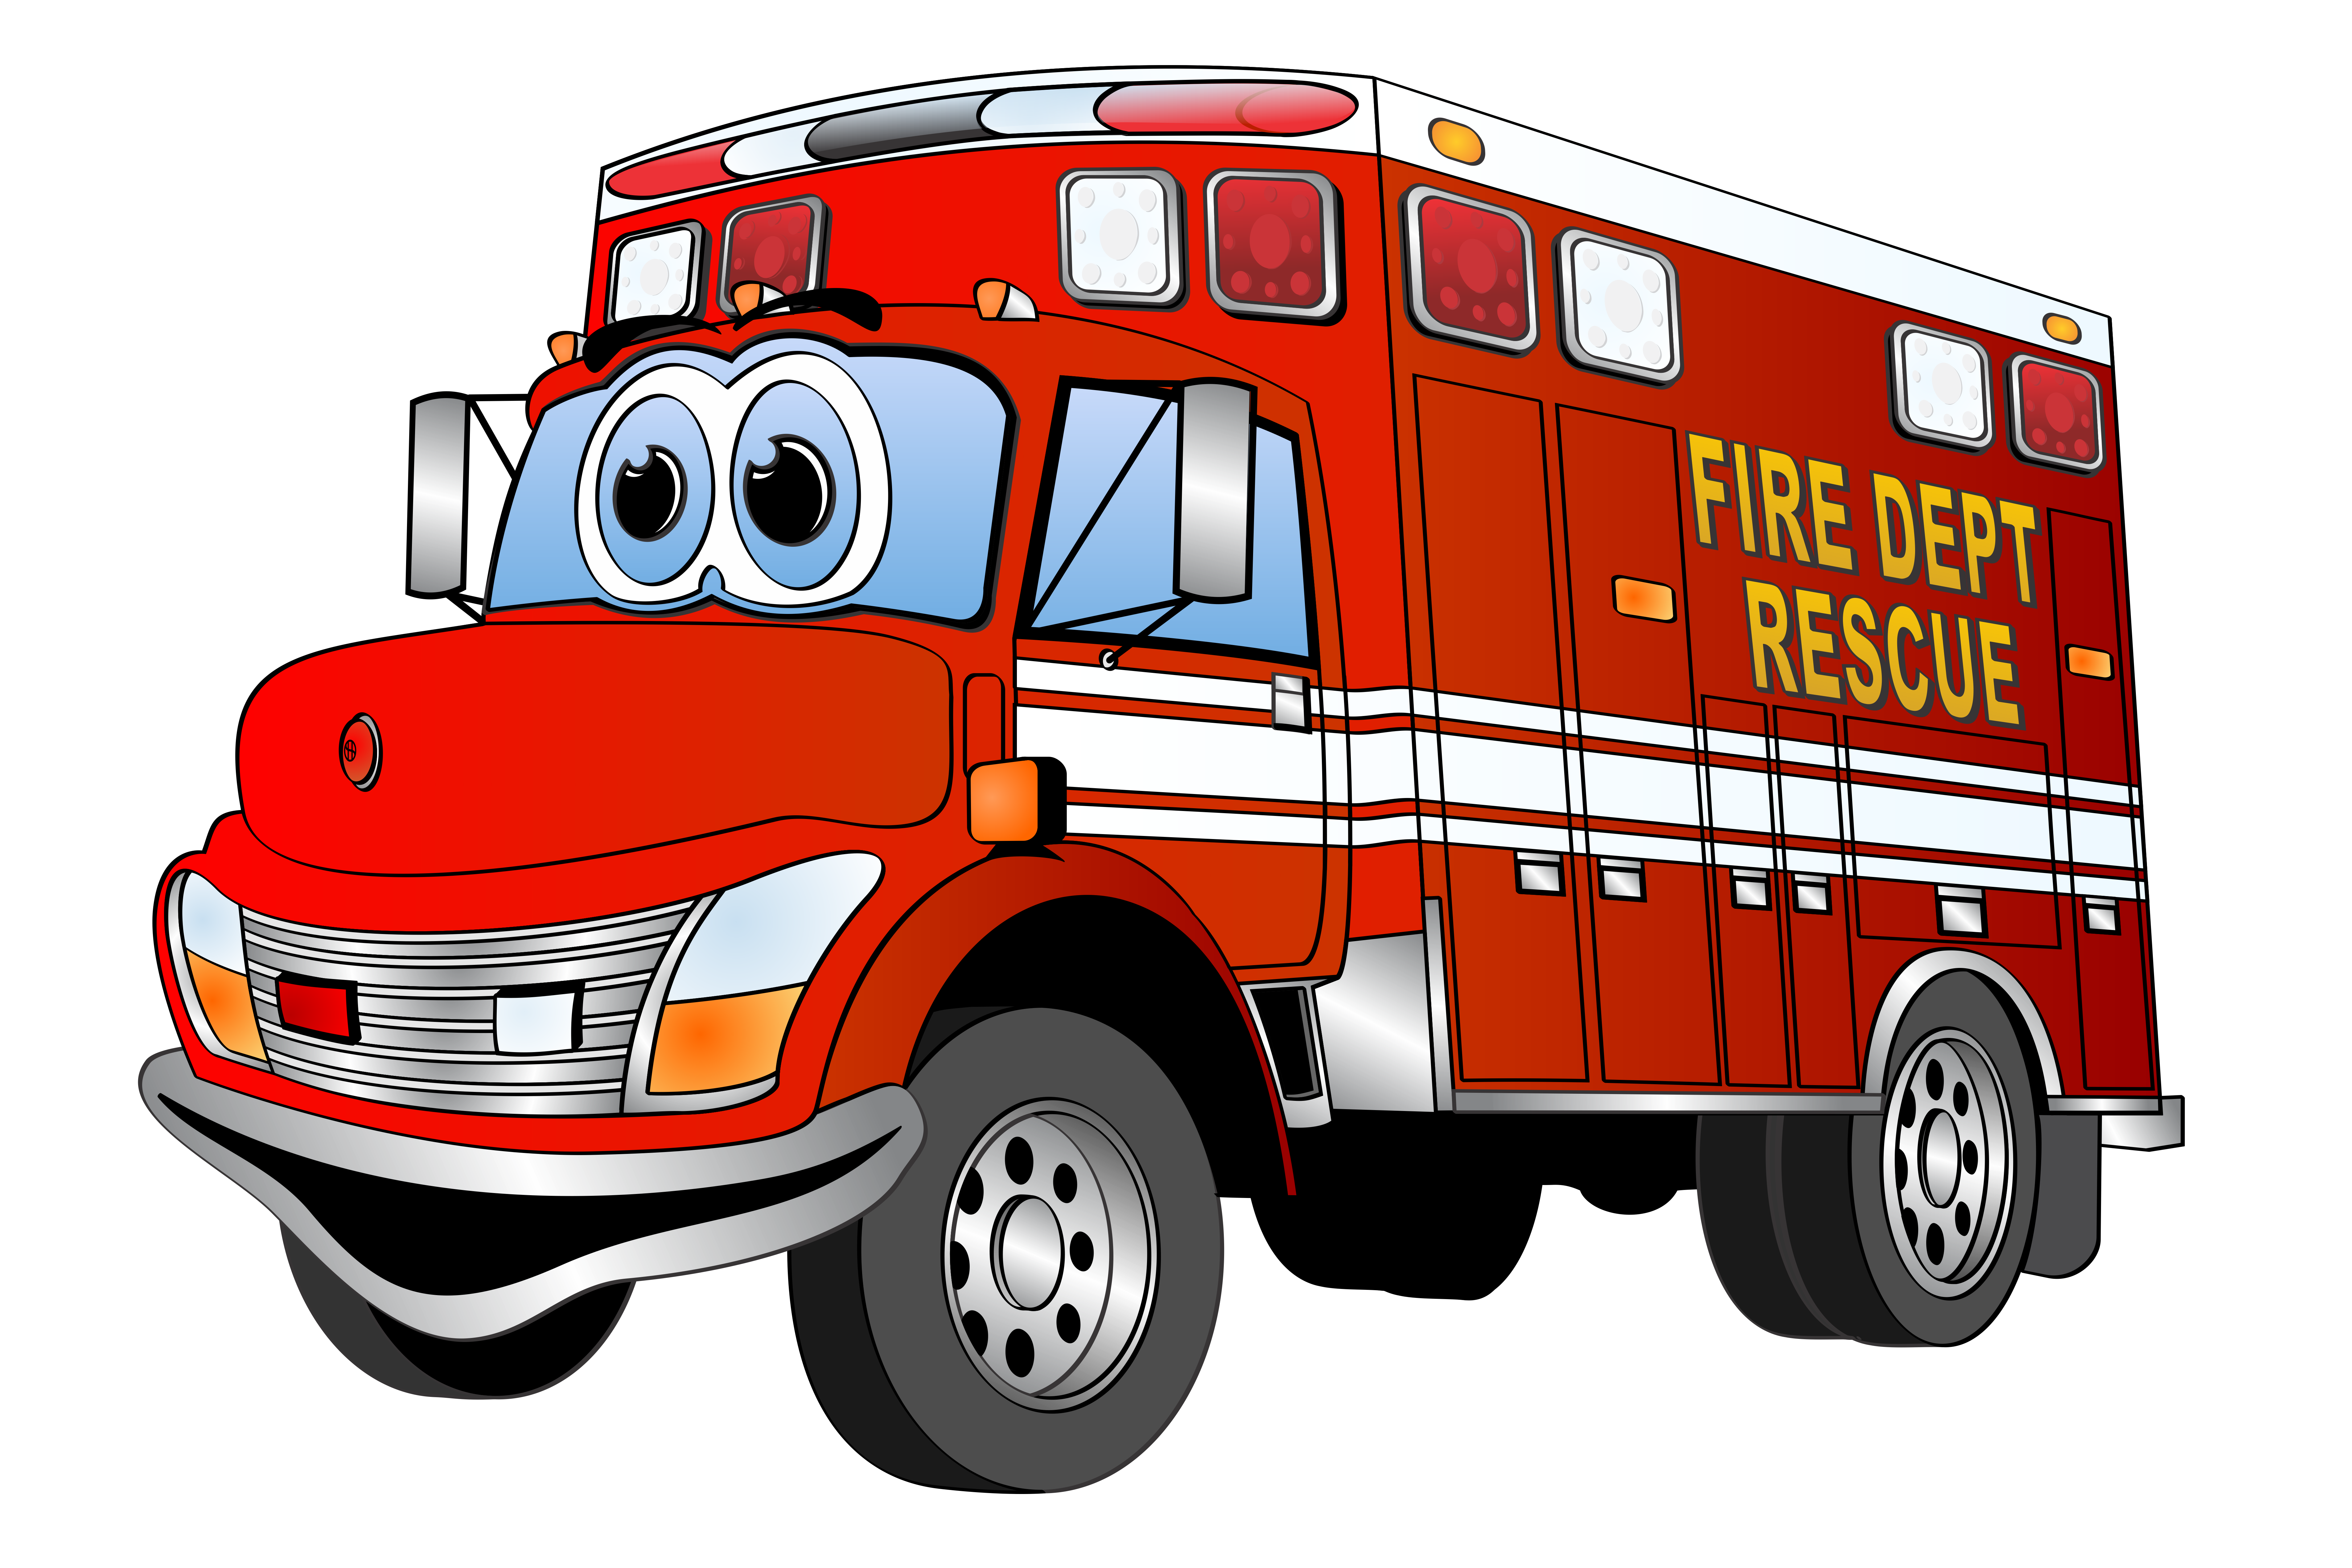 Clipart fire engine freeuse download Fire Truck Clipart | Clipart Panda - Free Clipart Images freeuse download